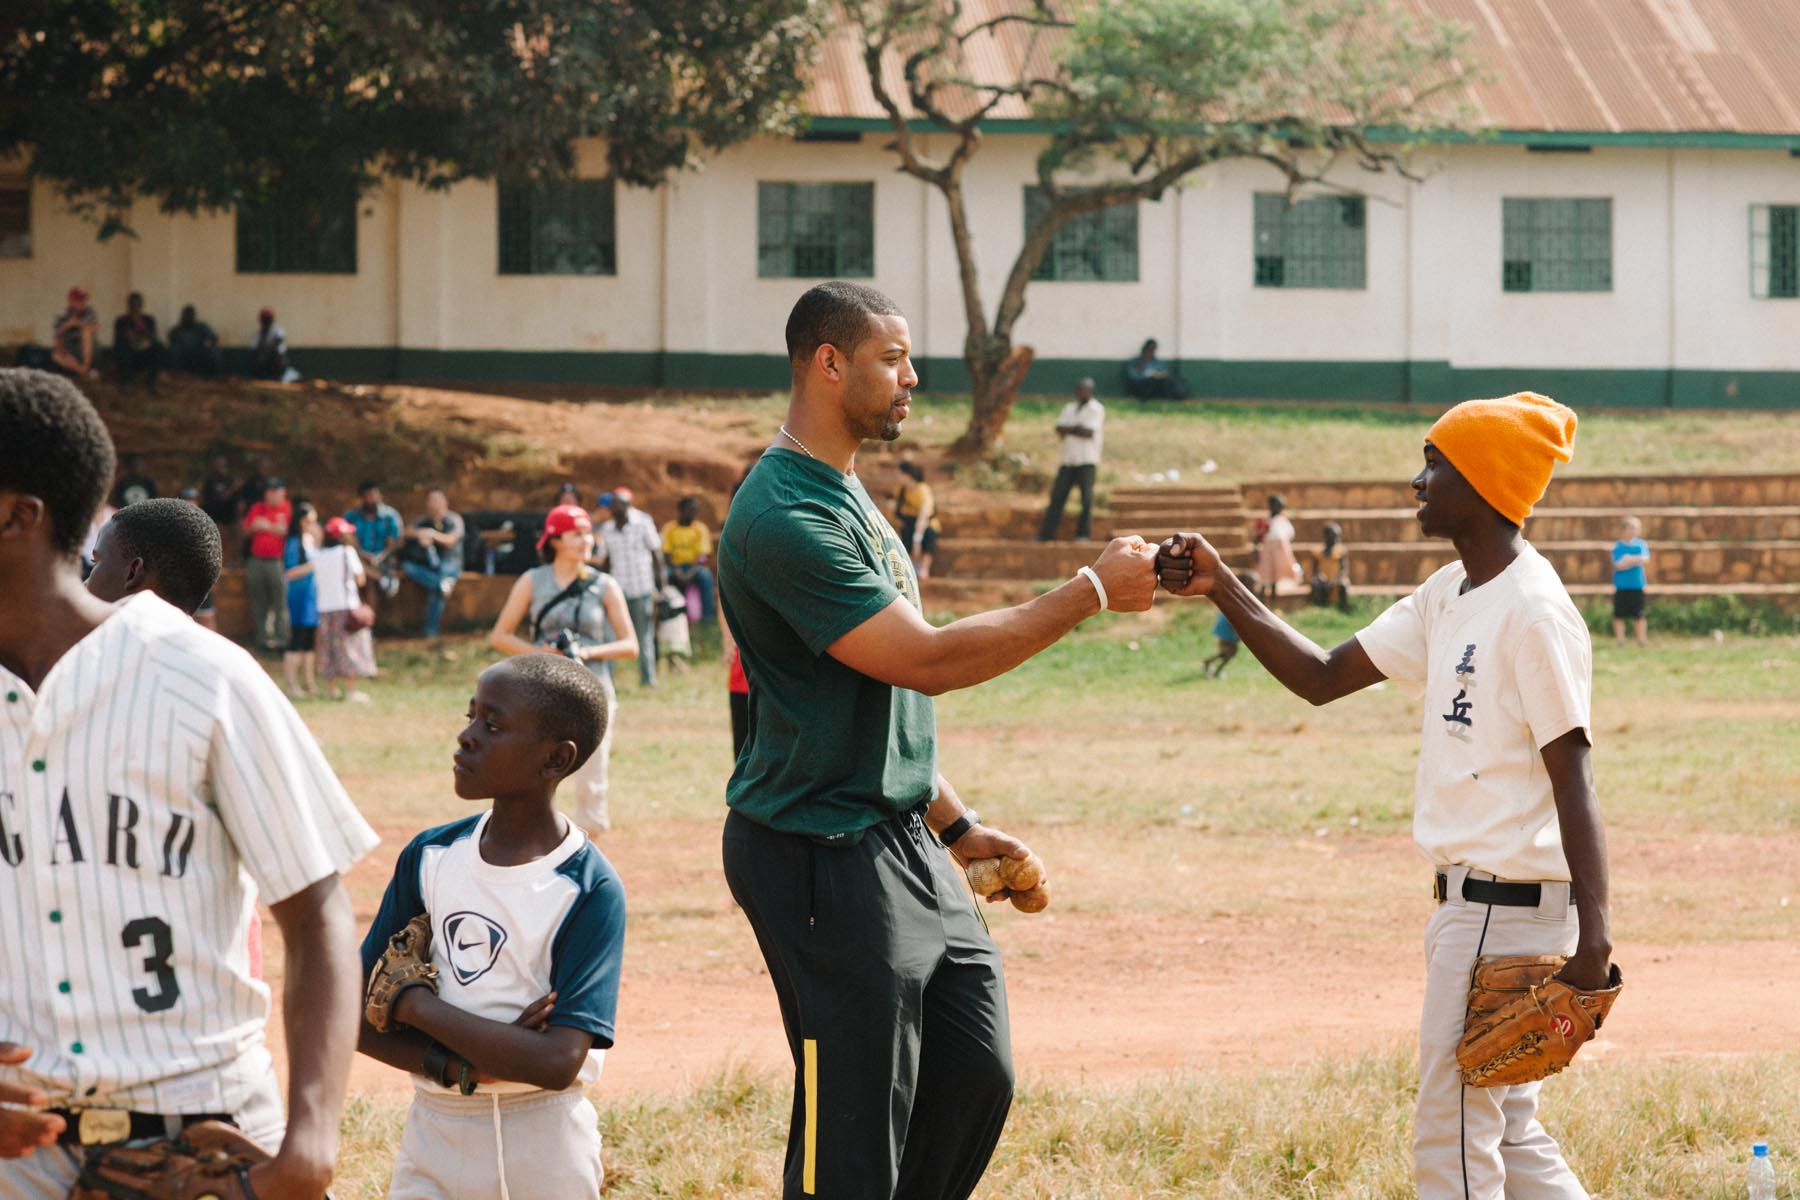 HKP-UgandaBaseball-Day3-9944.jpg